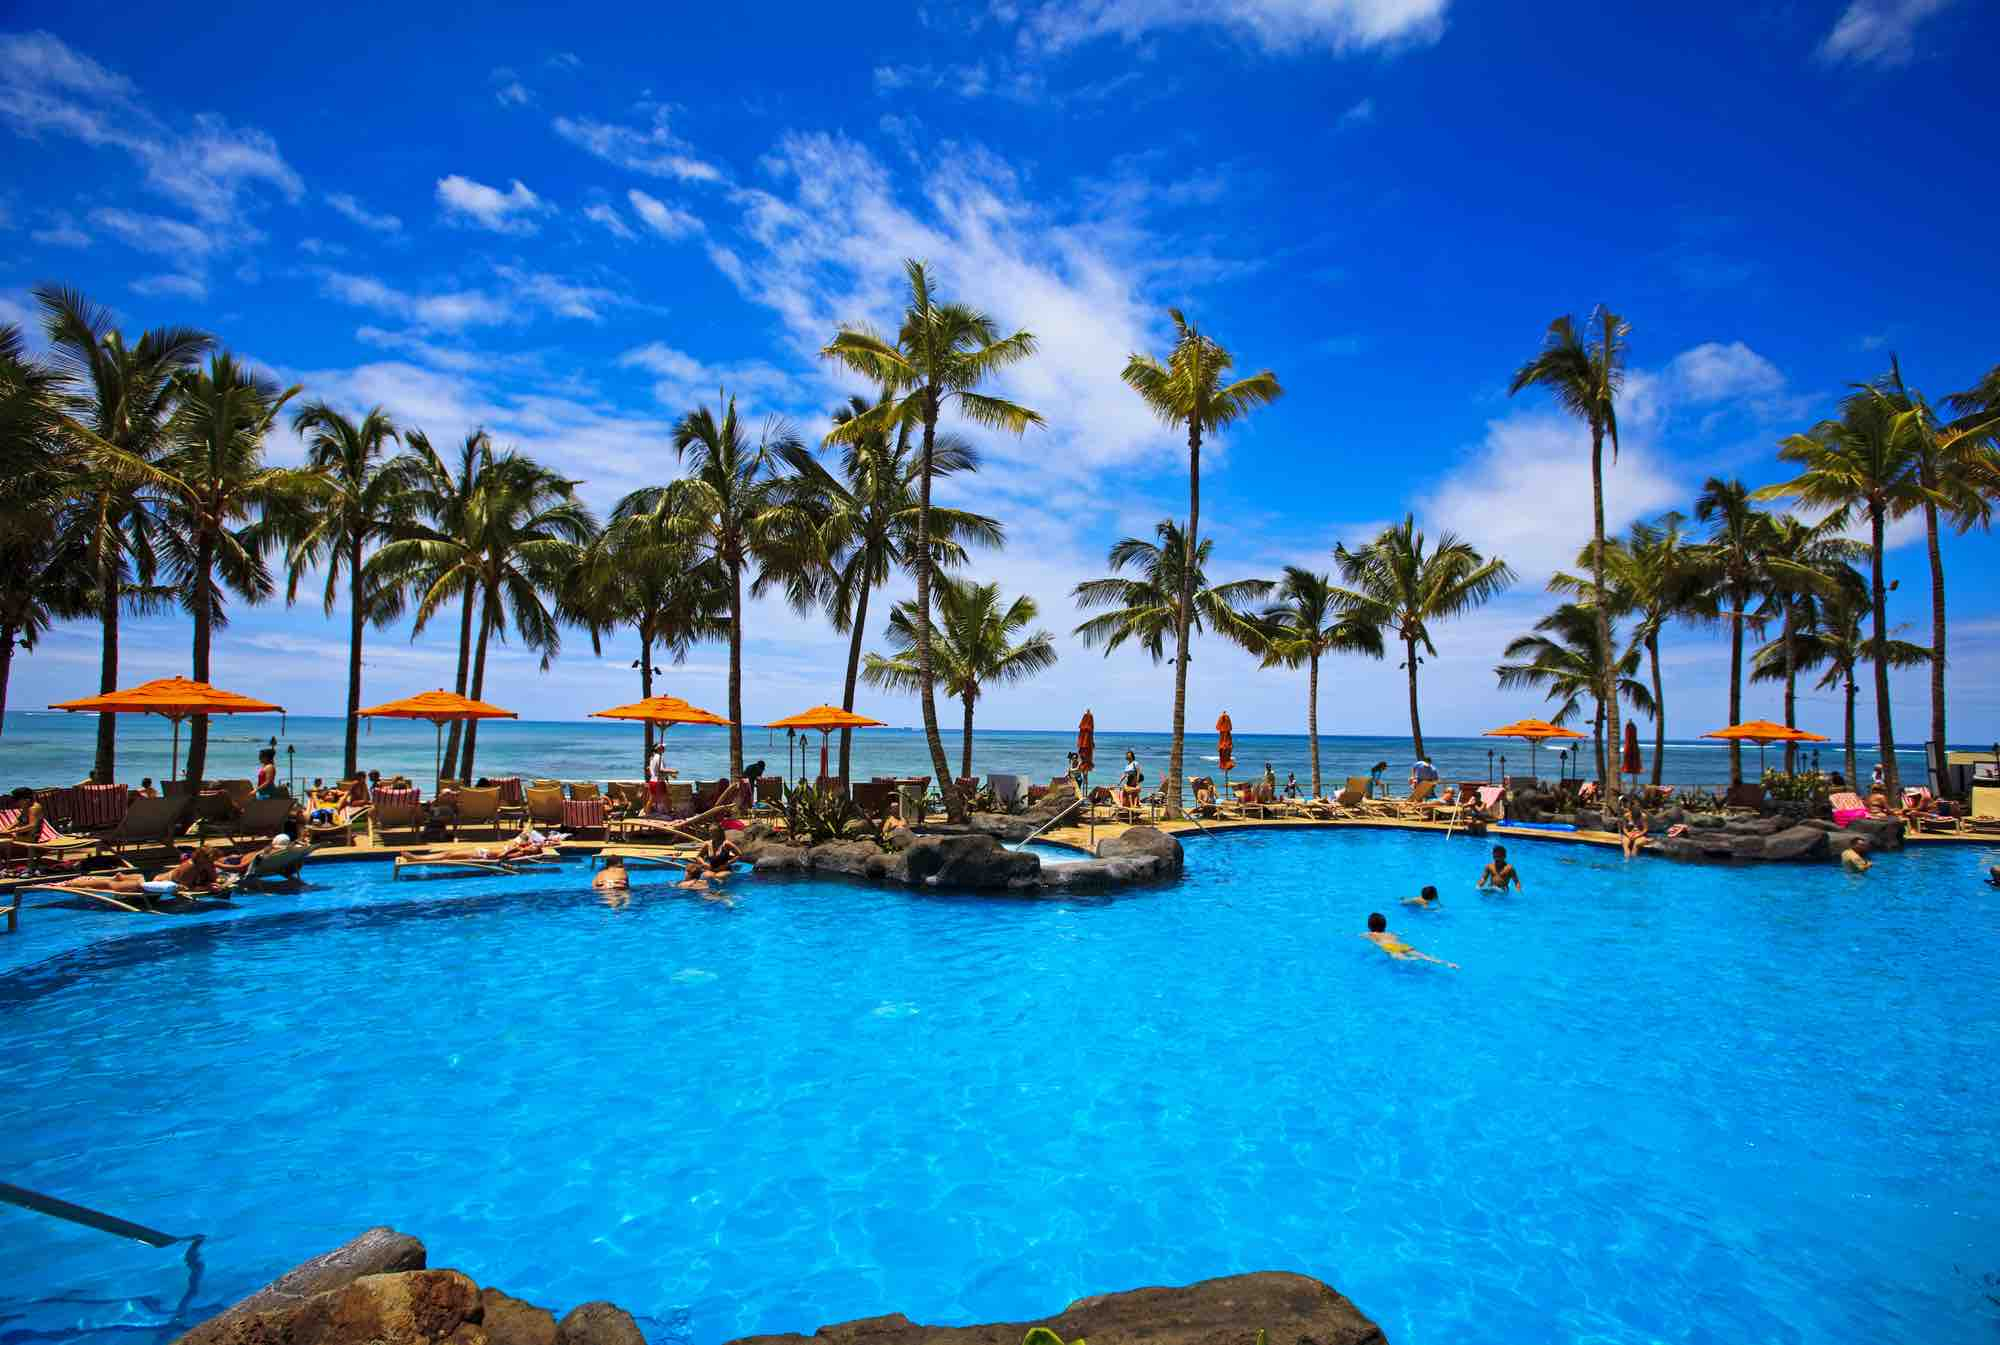 Find out the best resorts in Oahu for families recommended by top Hawaii blog Hawaii Travel with Kids. Image of a resort pool with palm trees and the ocean in the background.